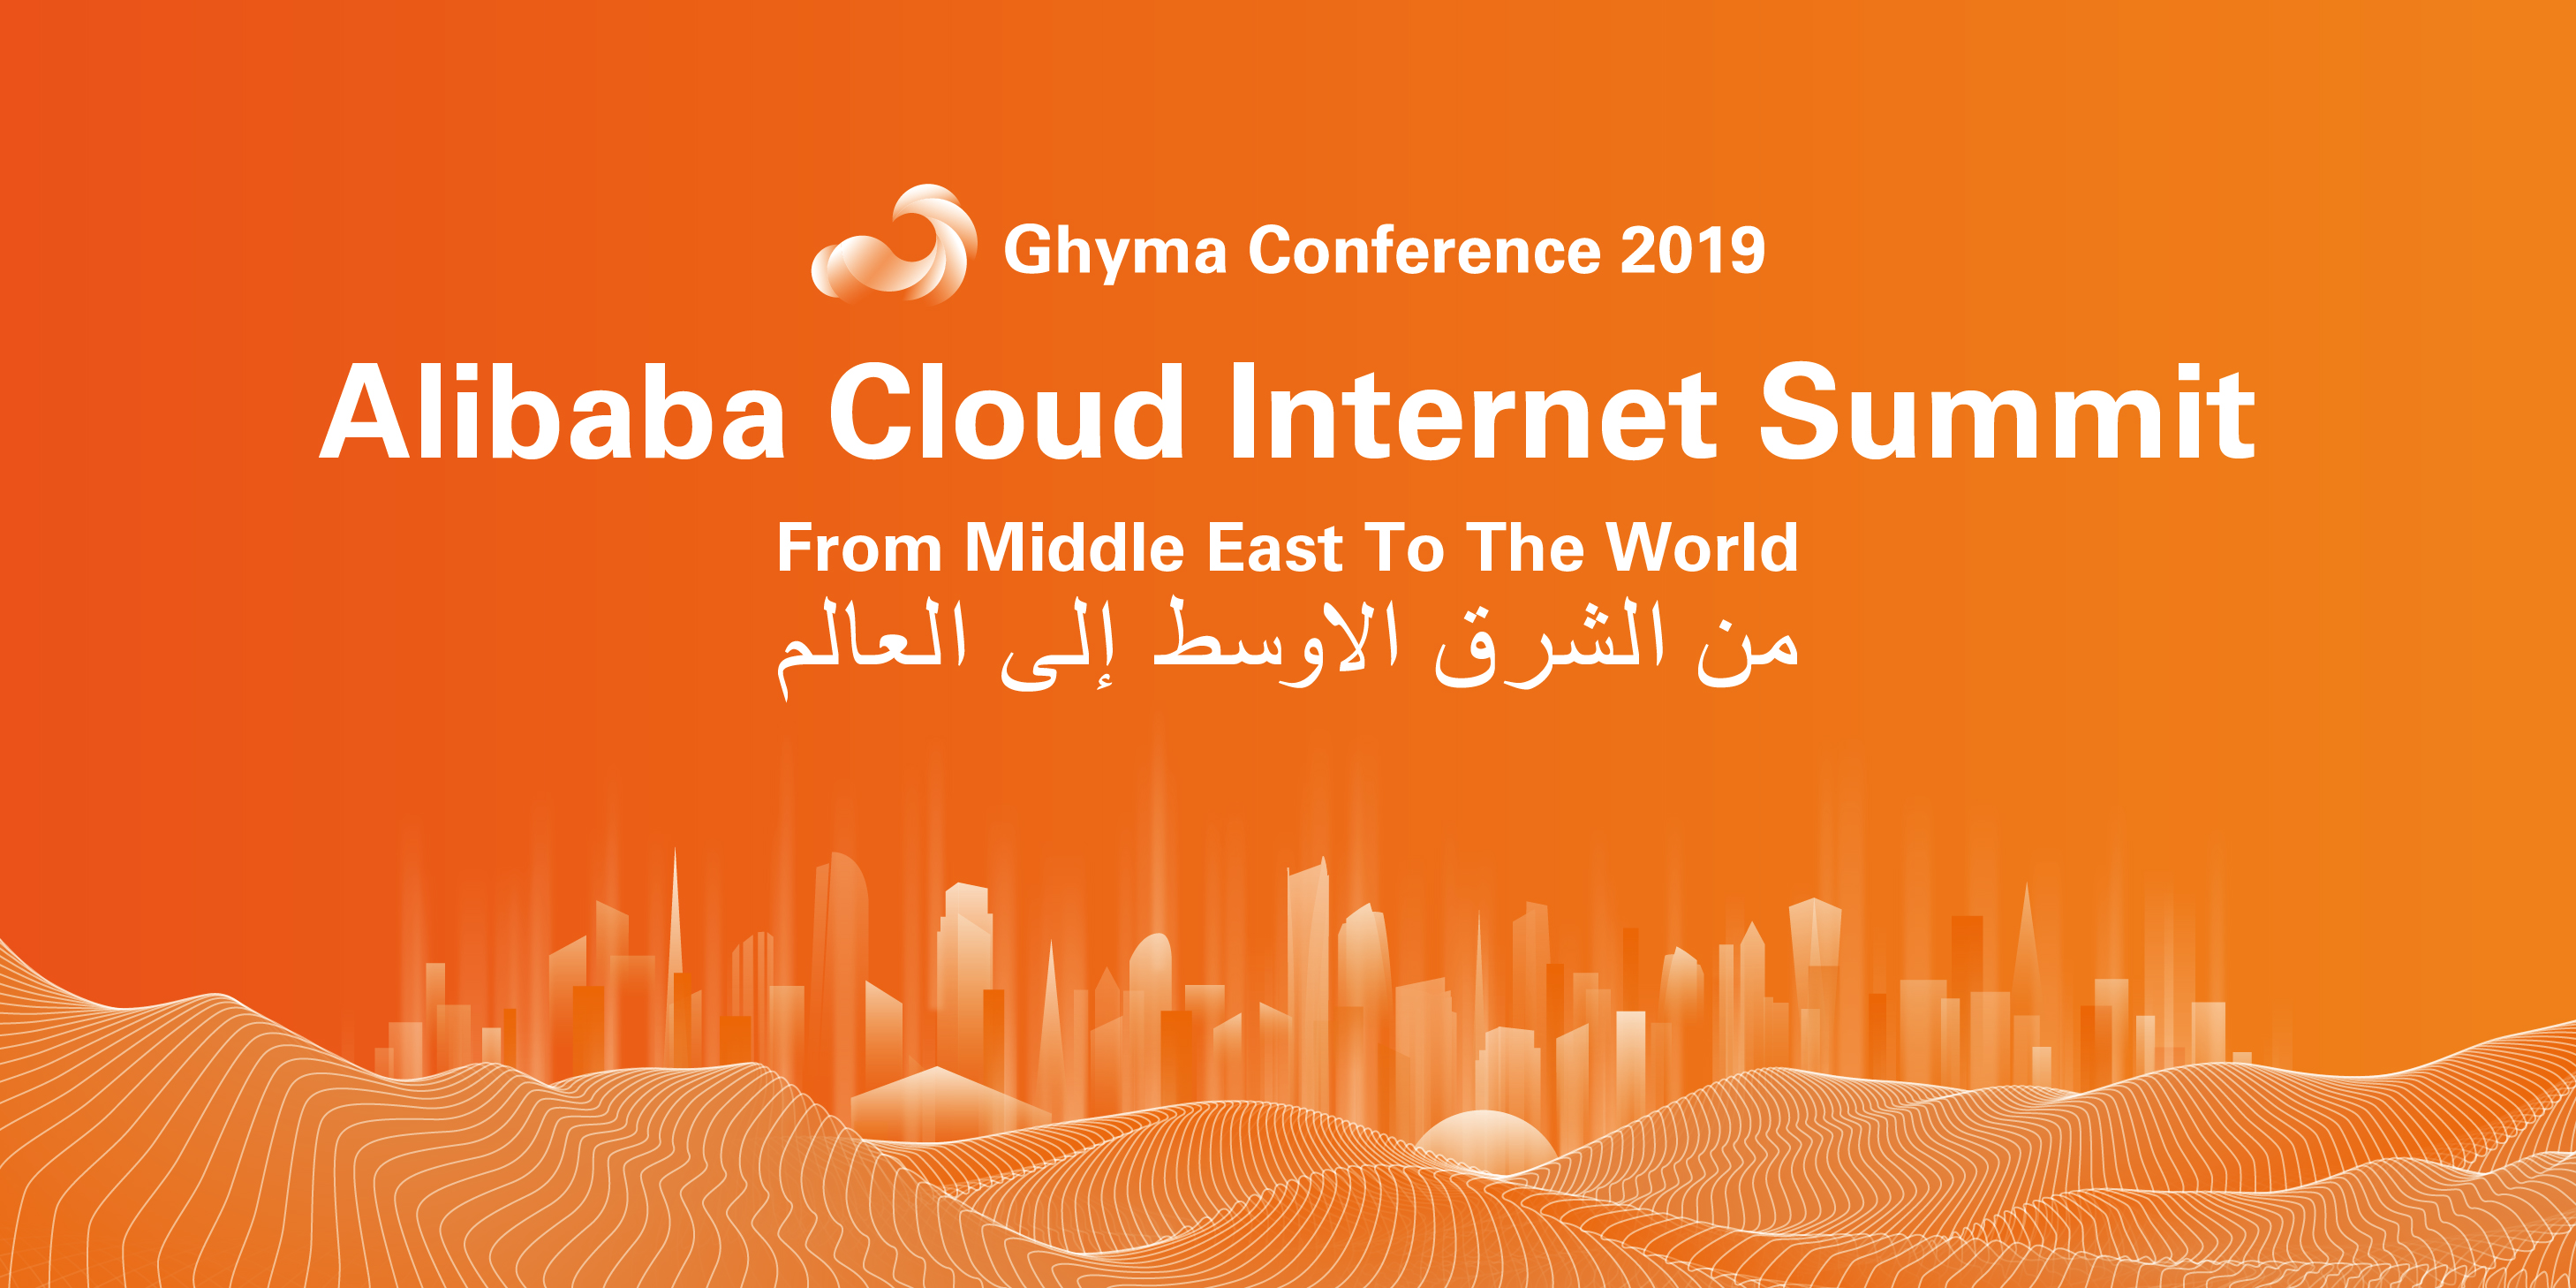 Alibaba Cloud Internet Summit